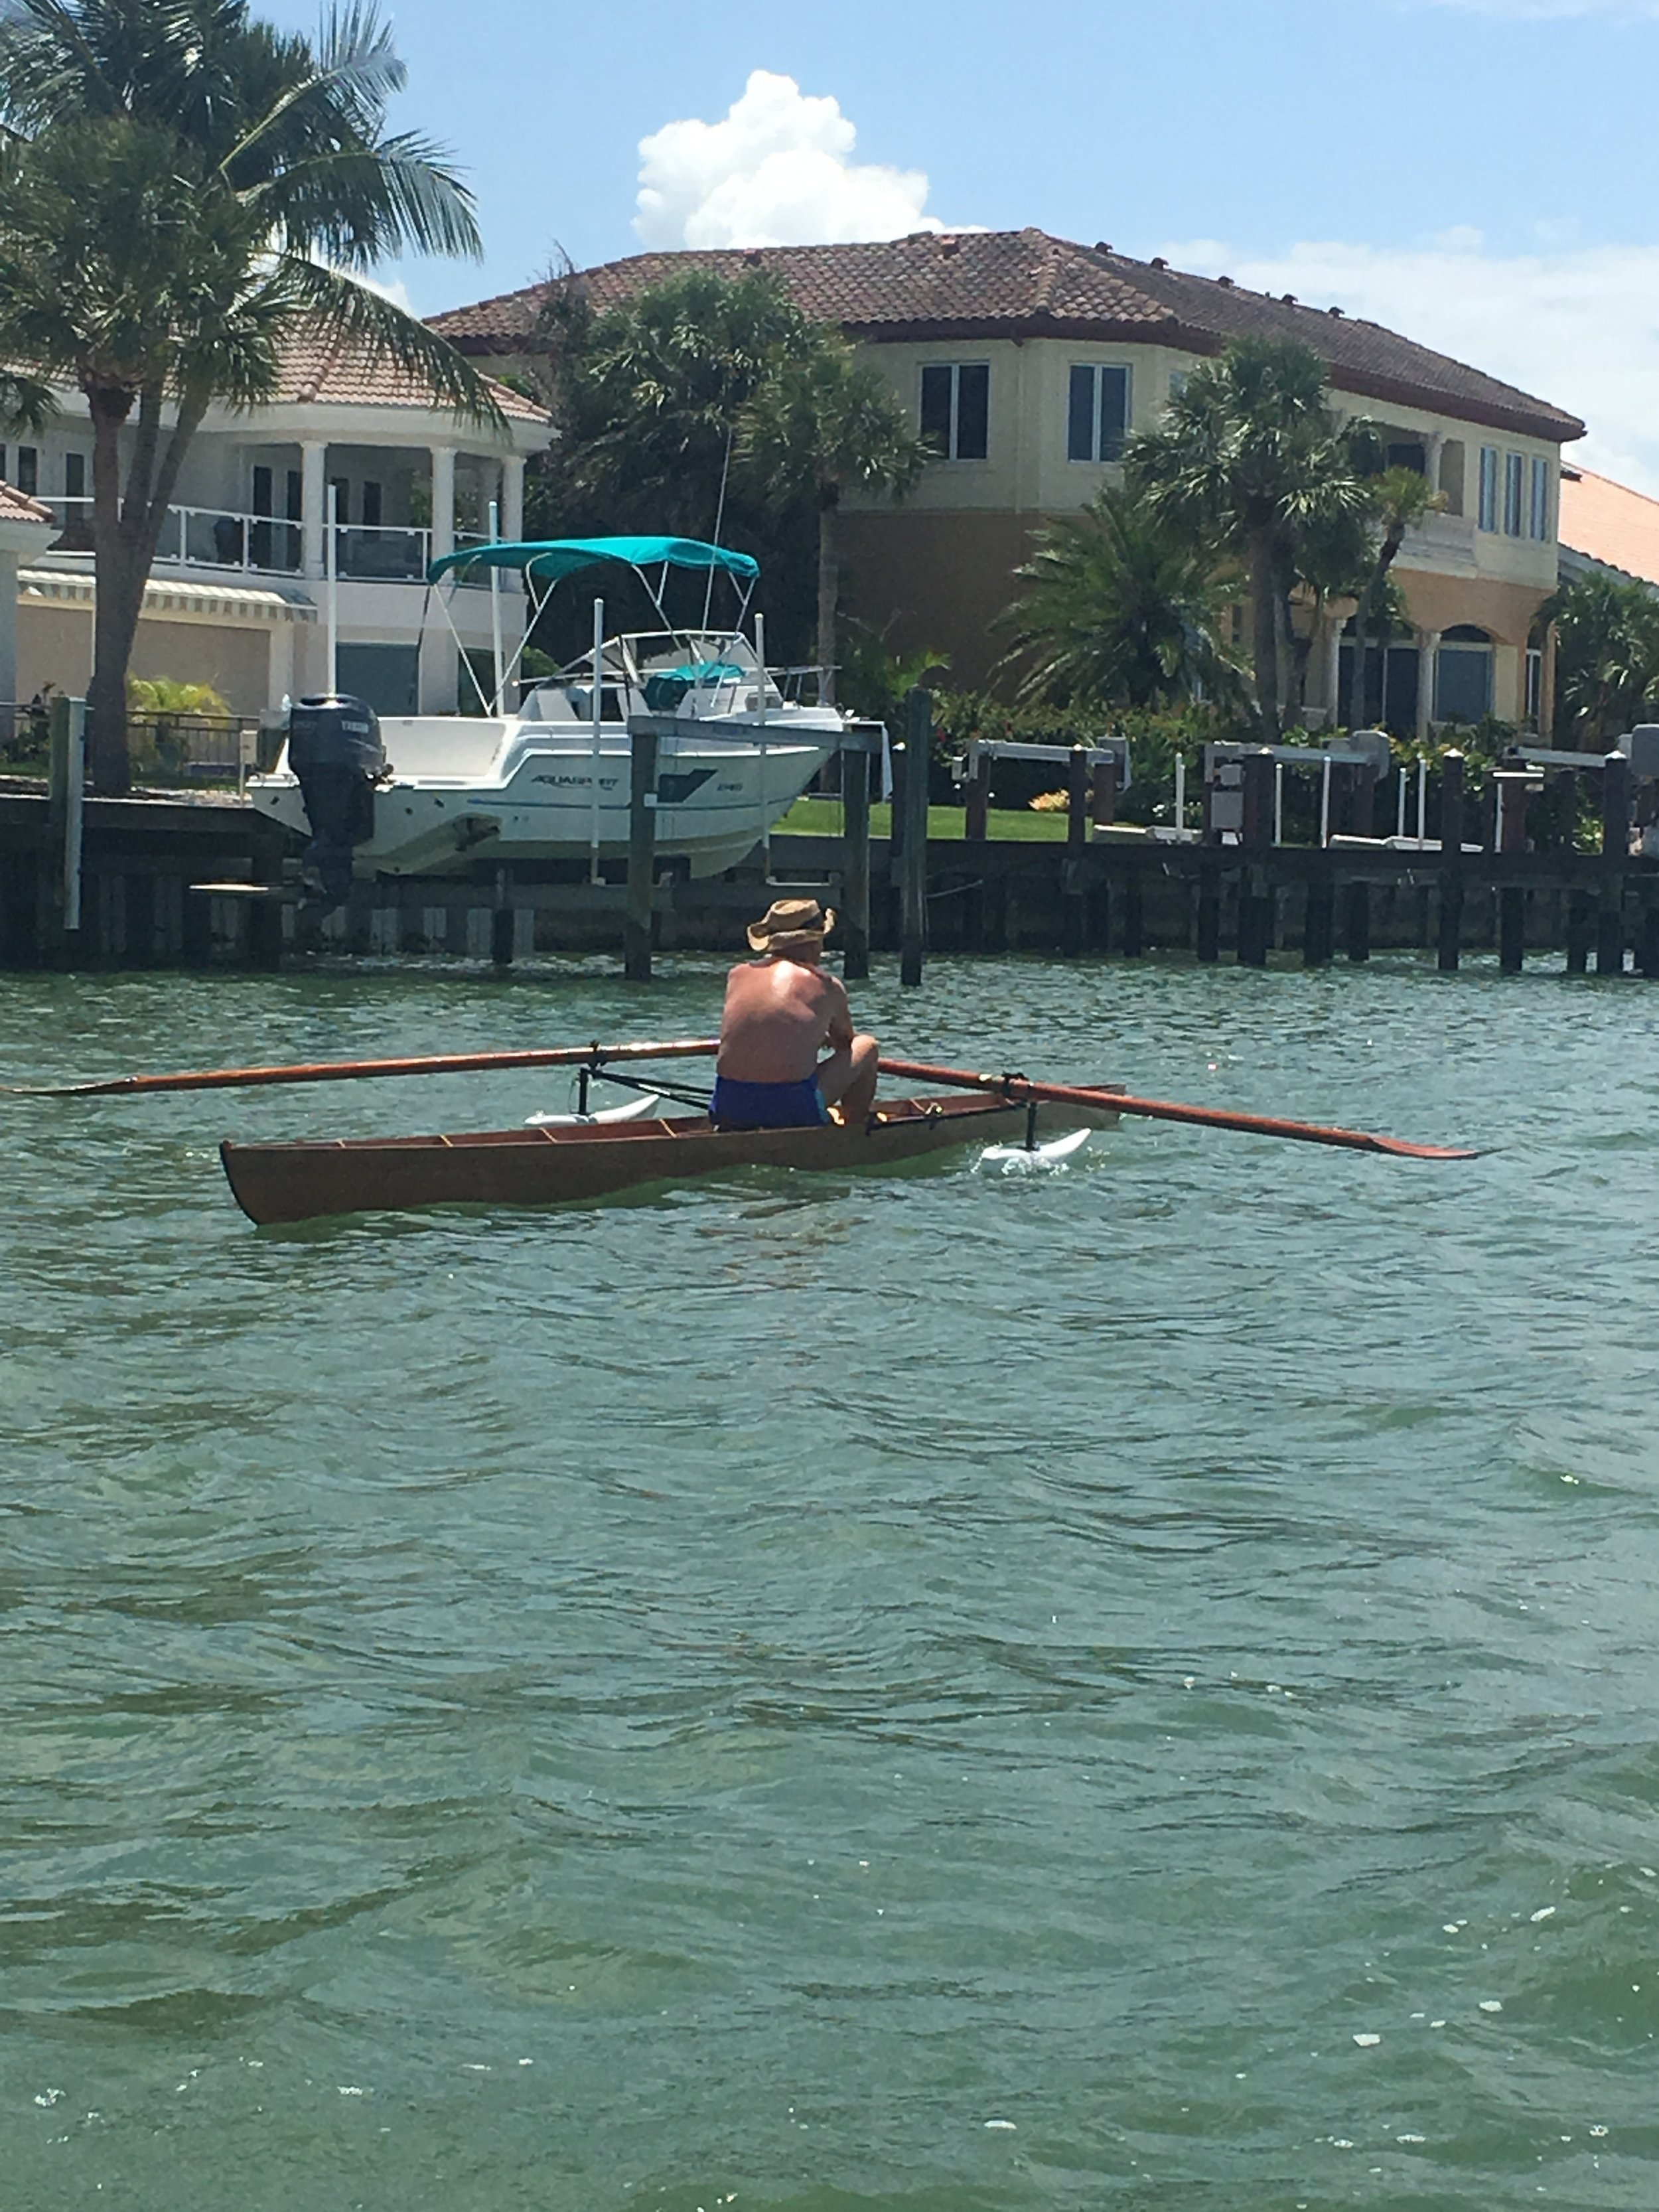 - Back rowing in Sarasota and we met this fine gentleman out on a row. He was in a beautiful hand built training shell. We look forward to many rows with him in the future!!